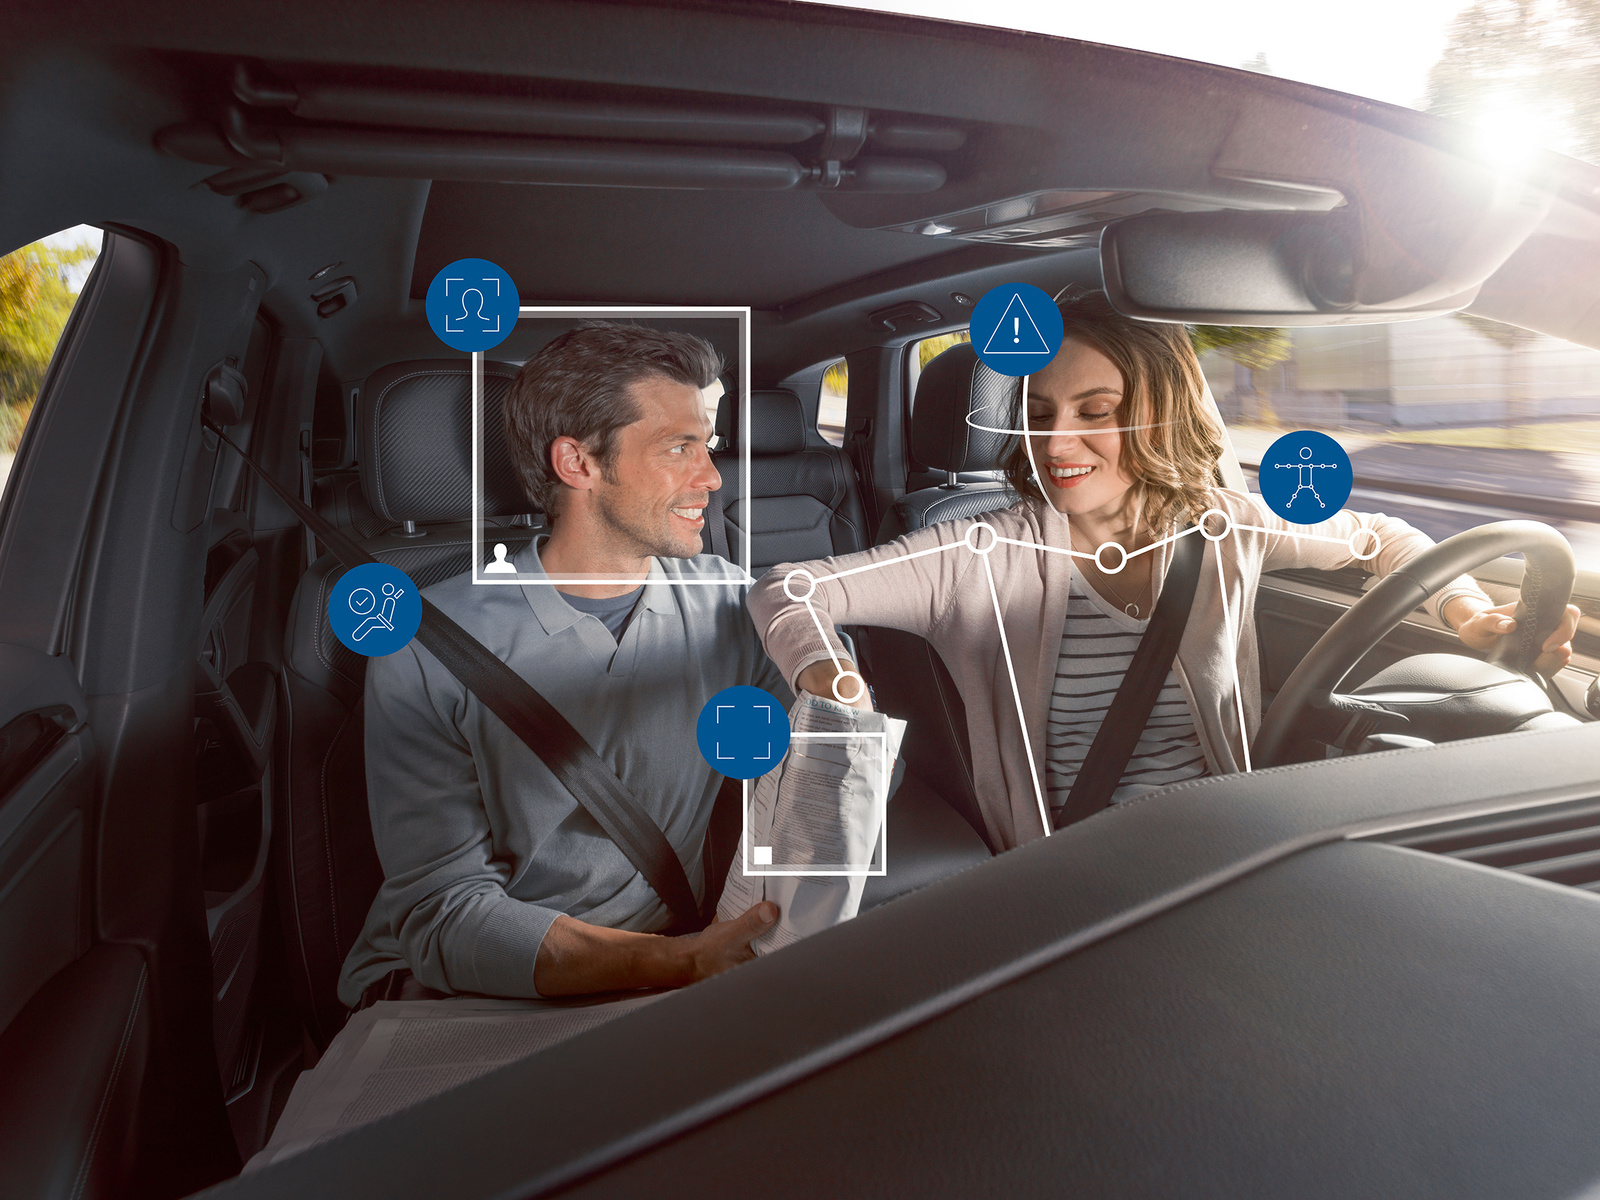 Camera-based lifesaver: Bosch helps cars keep an eye on their passengers